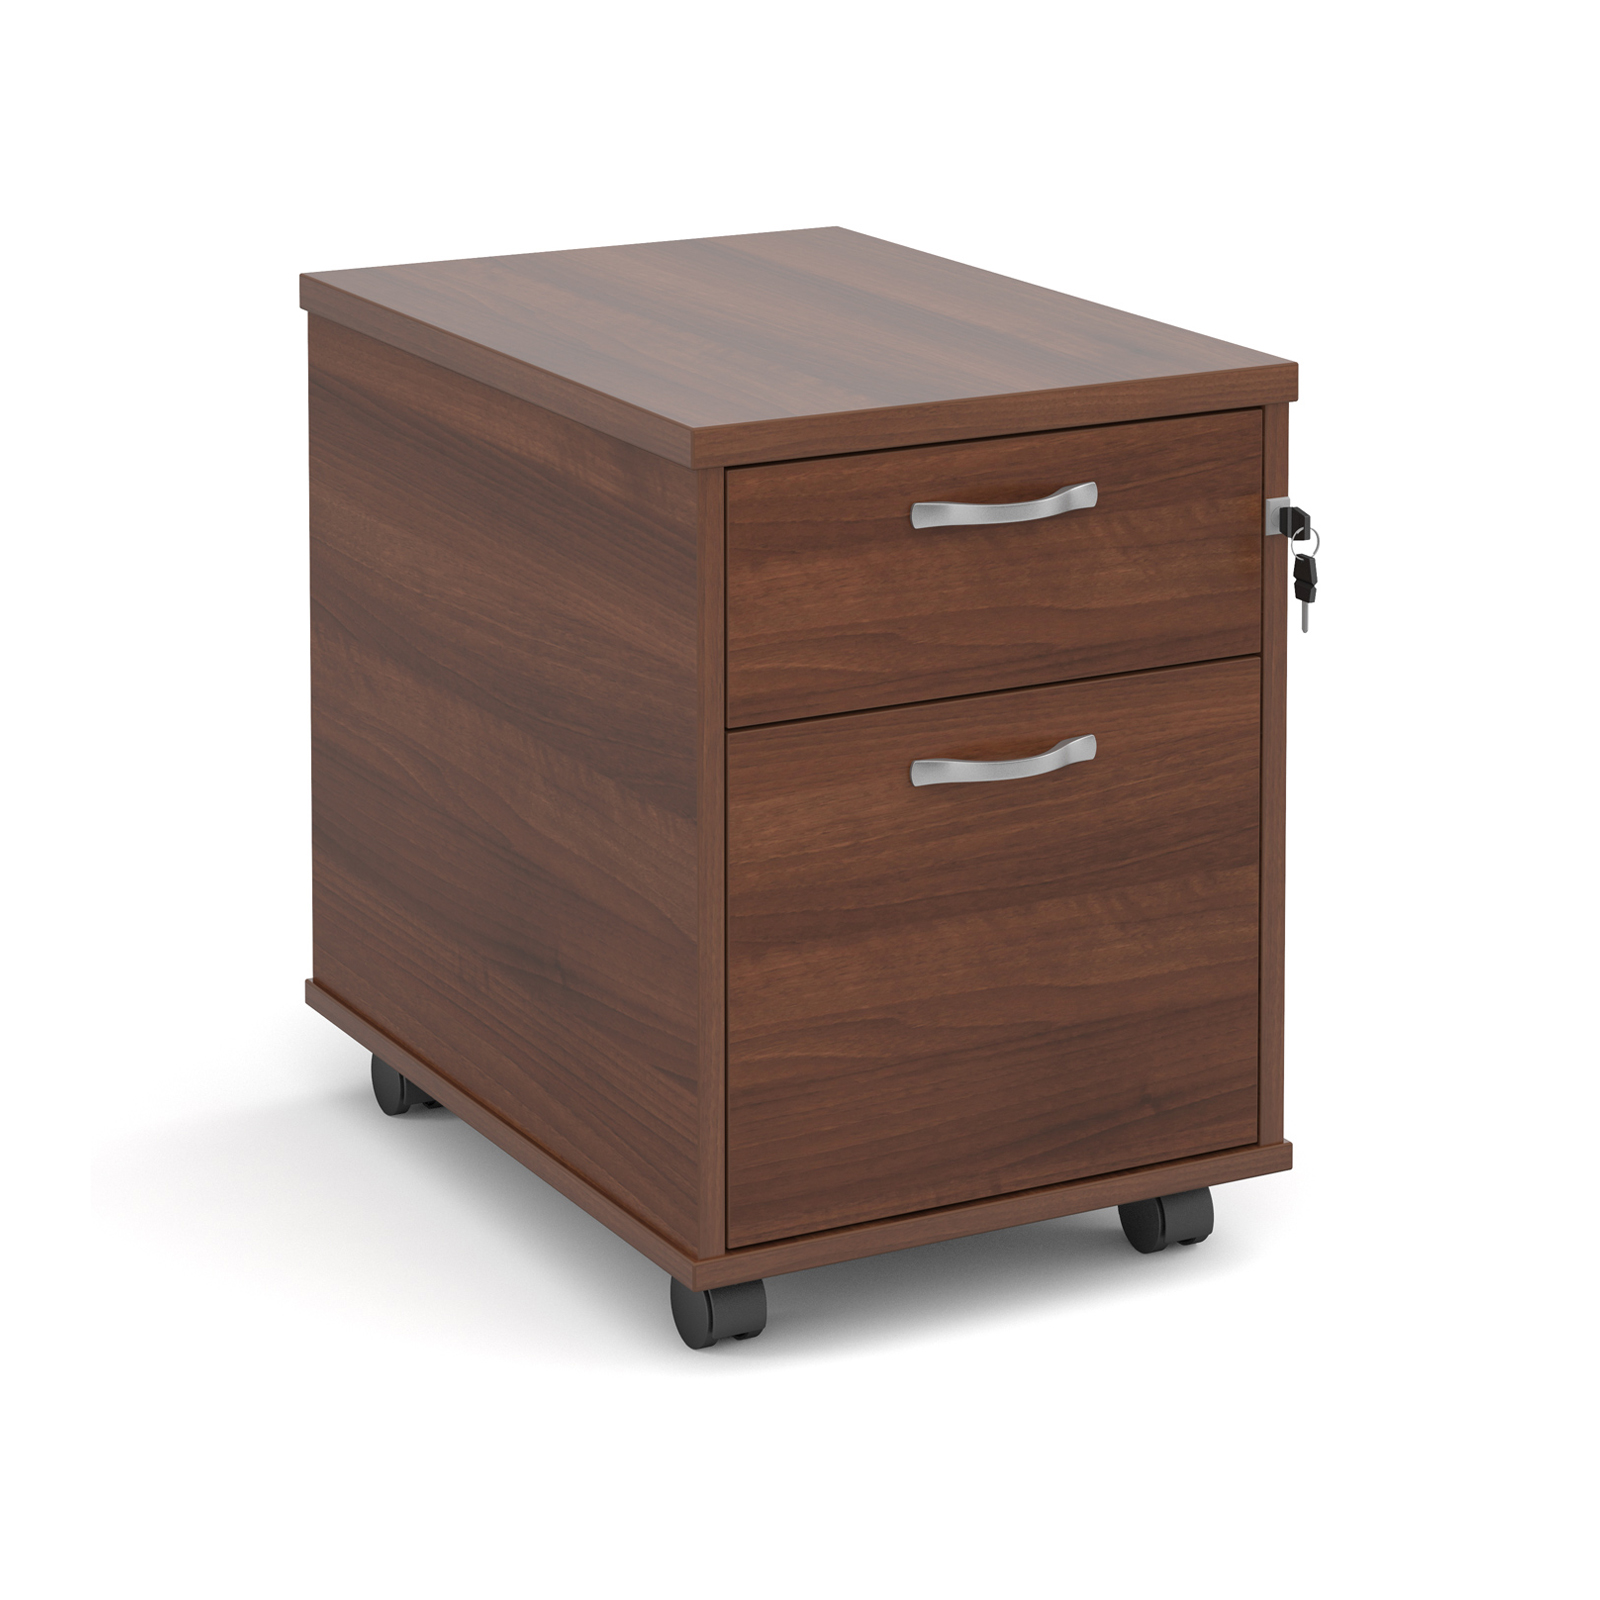 2 Drawer Mobile 2 drawer pedestal with silver handles 600mm deep - walnut